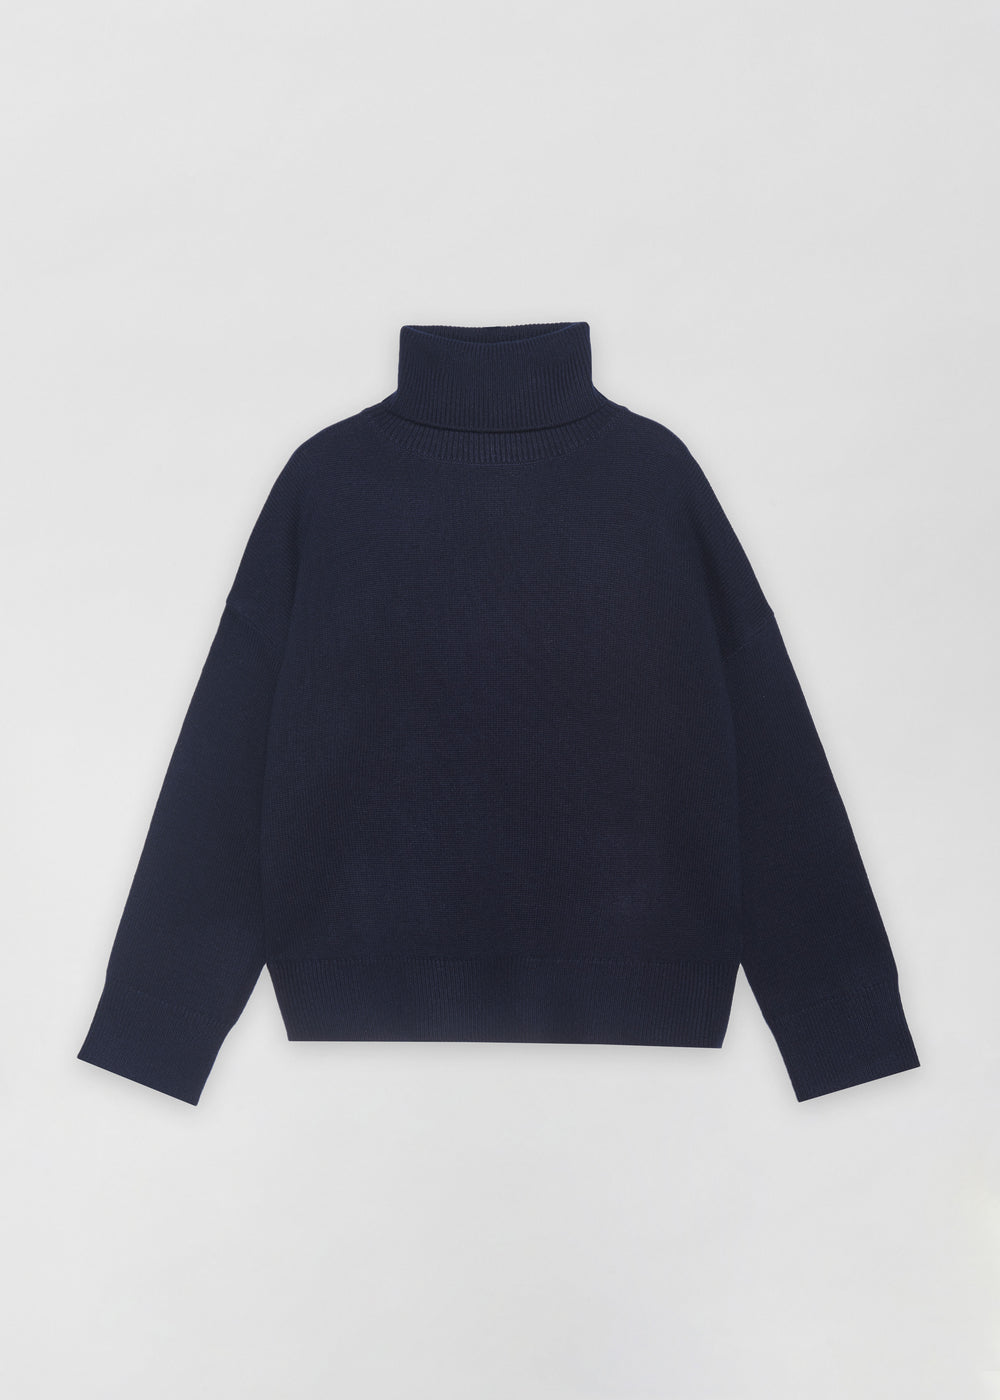 Boxy Turtleneck Sweater - Navy - CO